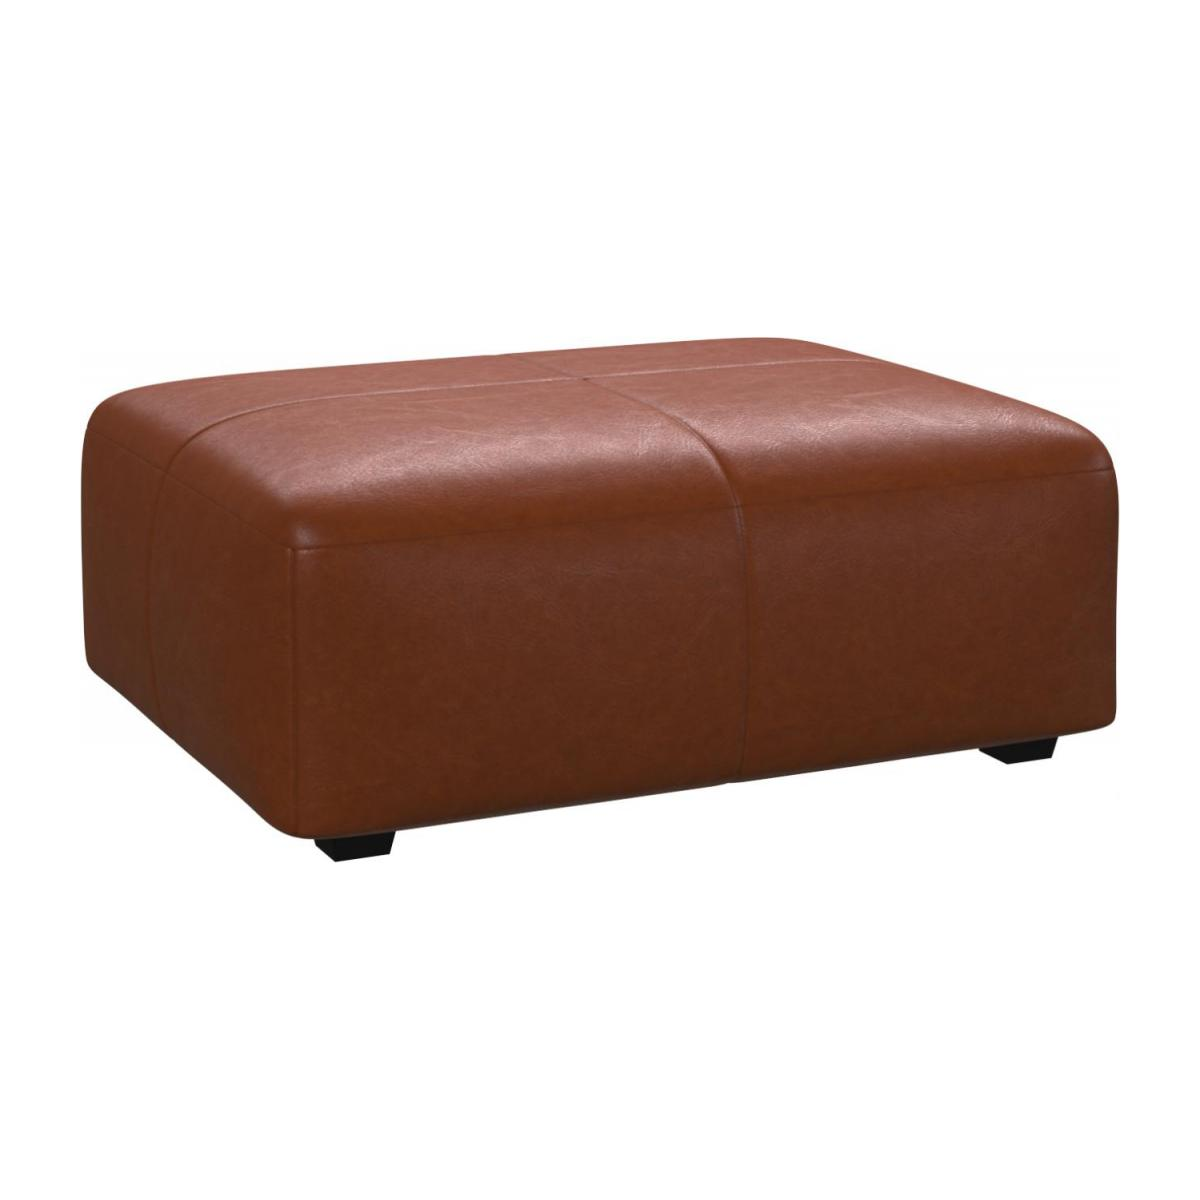 Footstool in Vintage aniline leather, old chestnut n°1